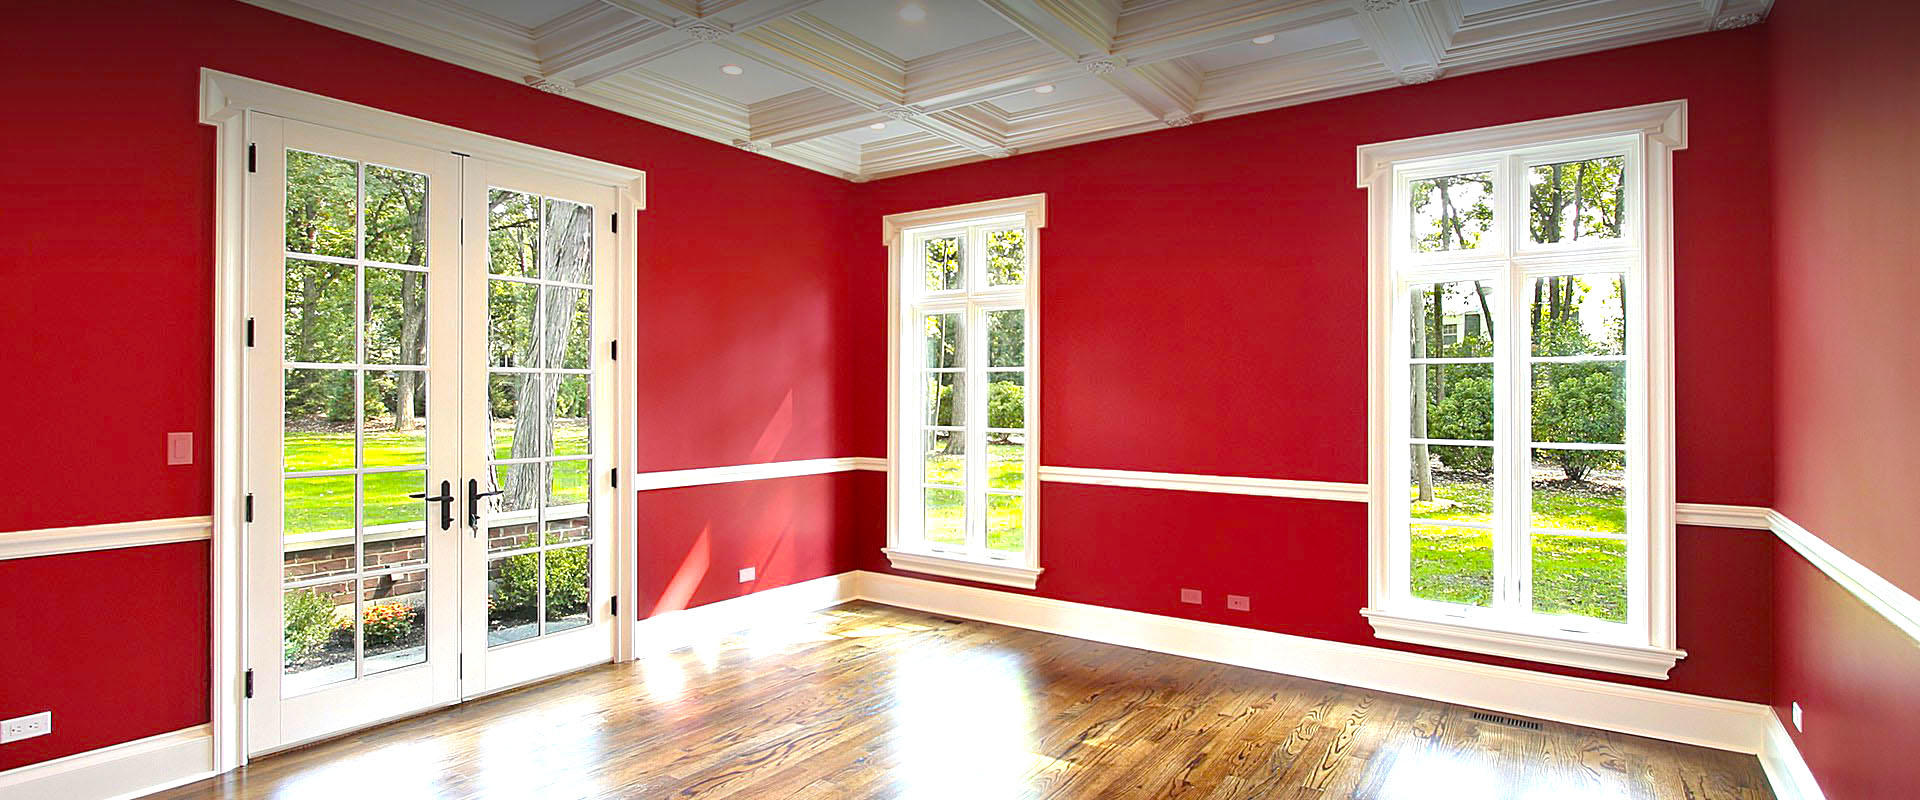 interior painting in oshkosh wisconsin